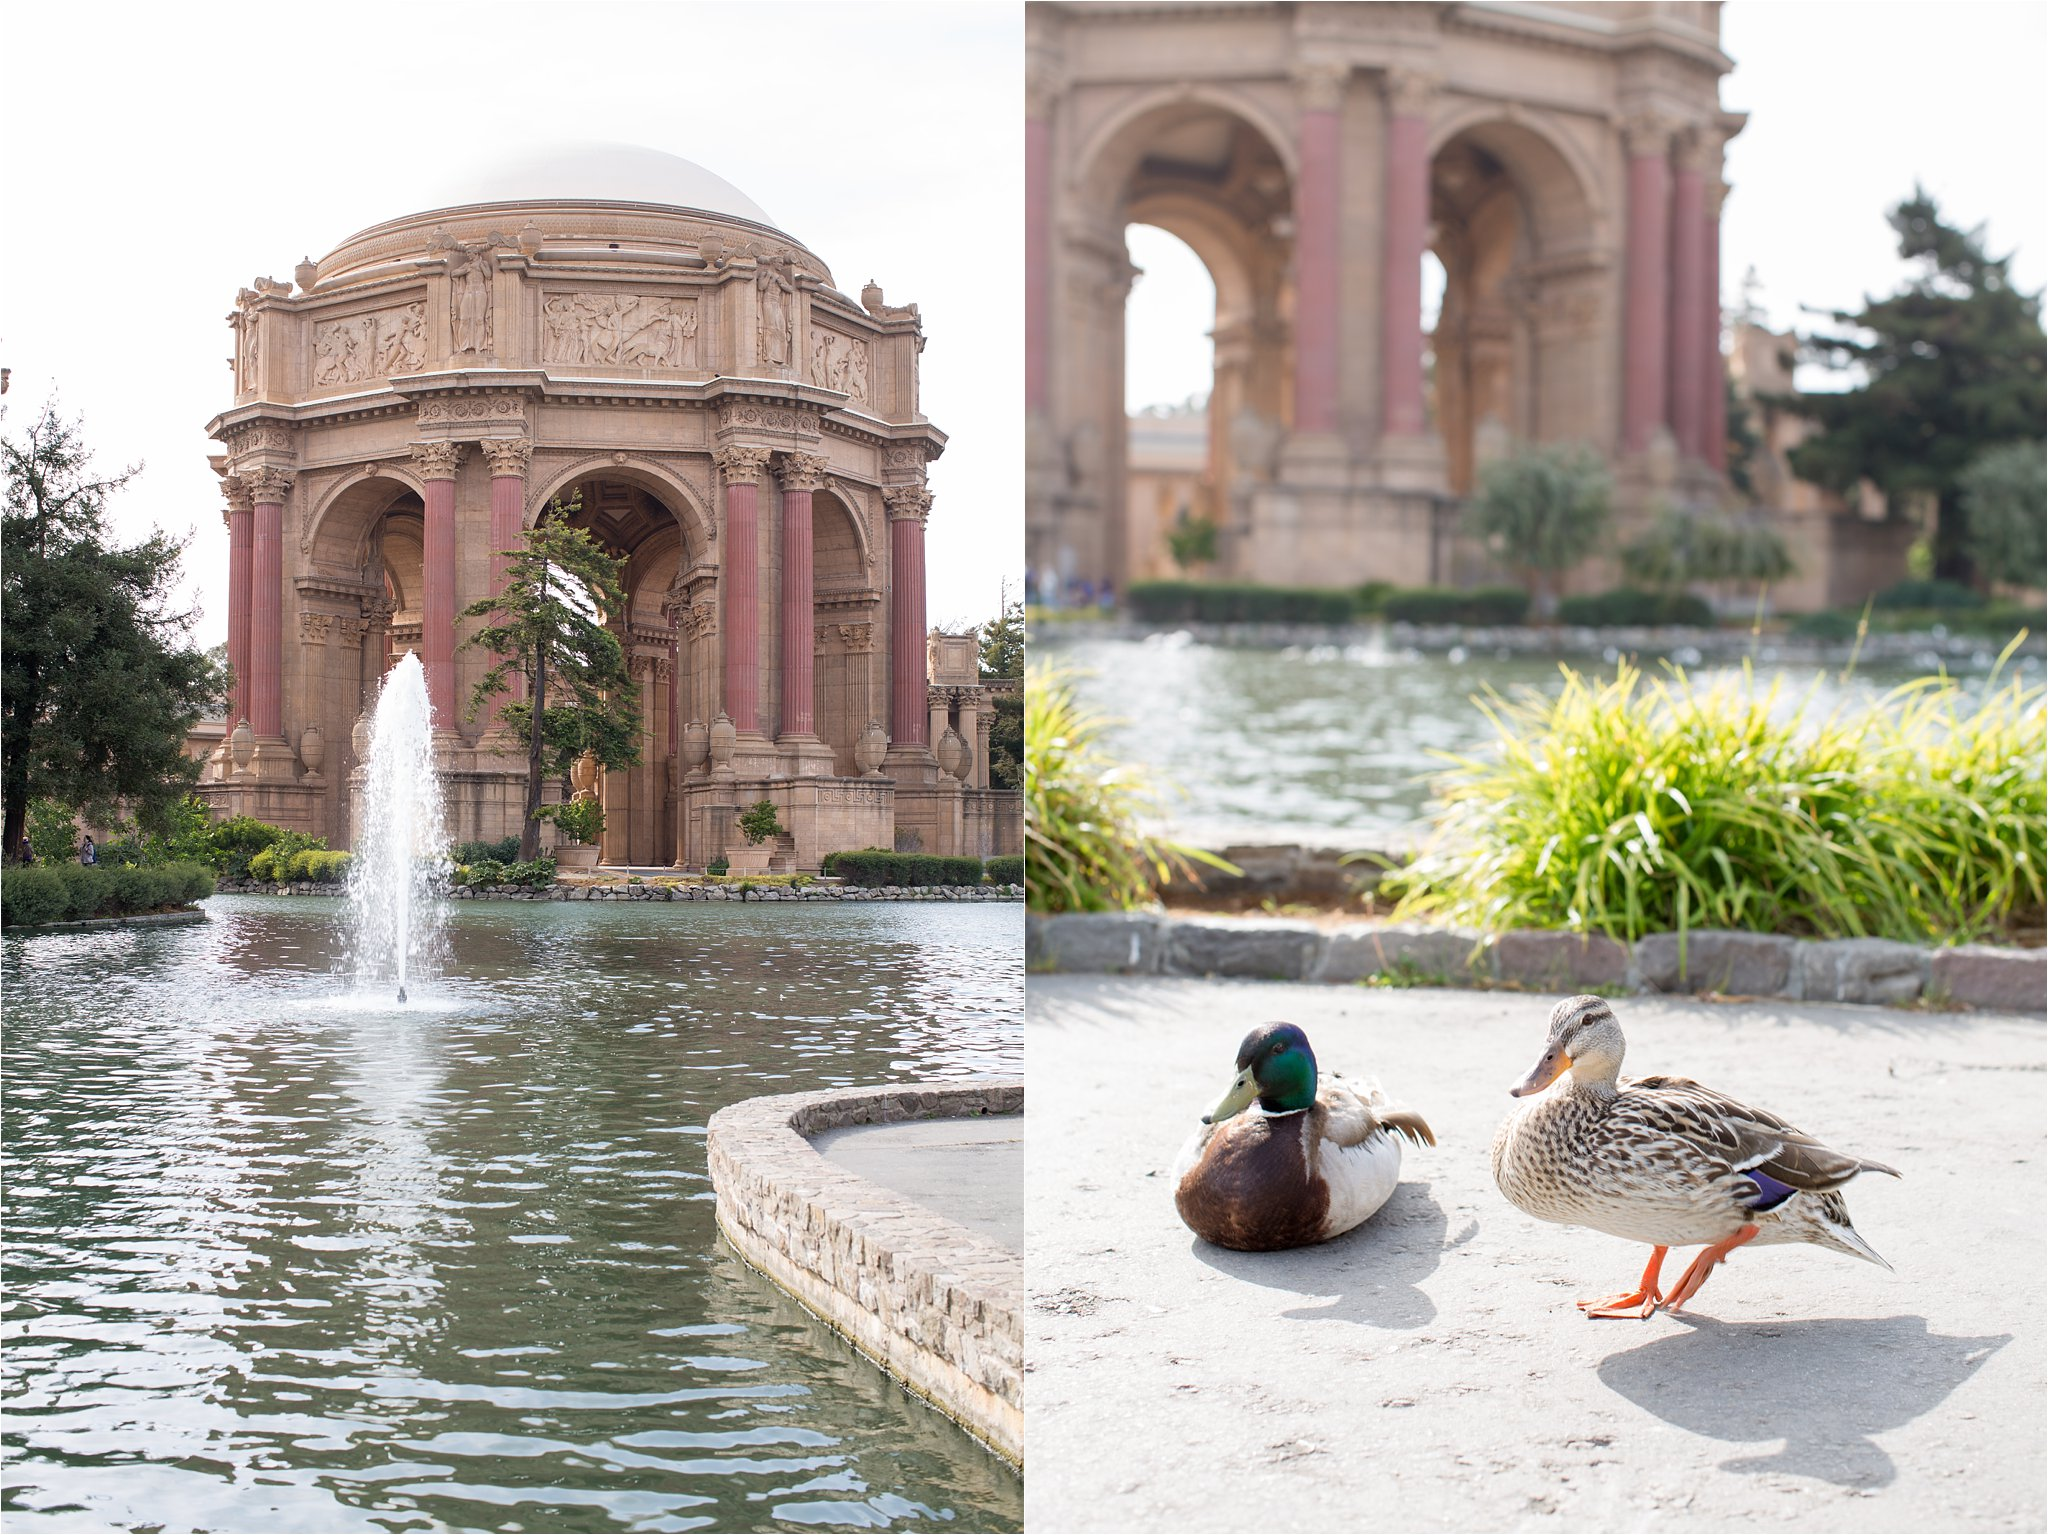 Palace of Fine Arts and Ducks